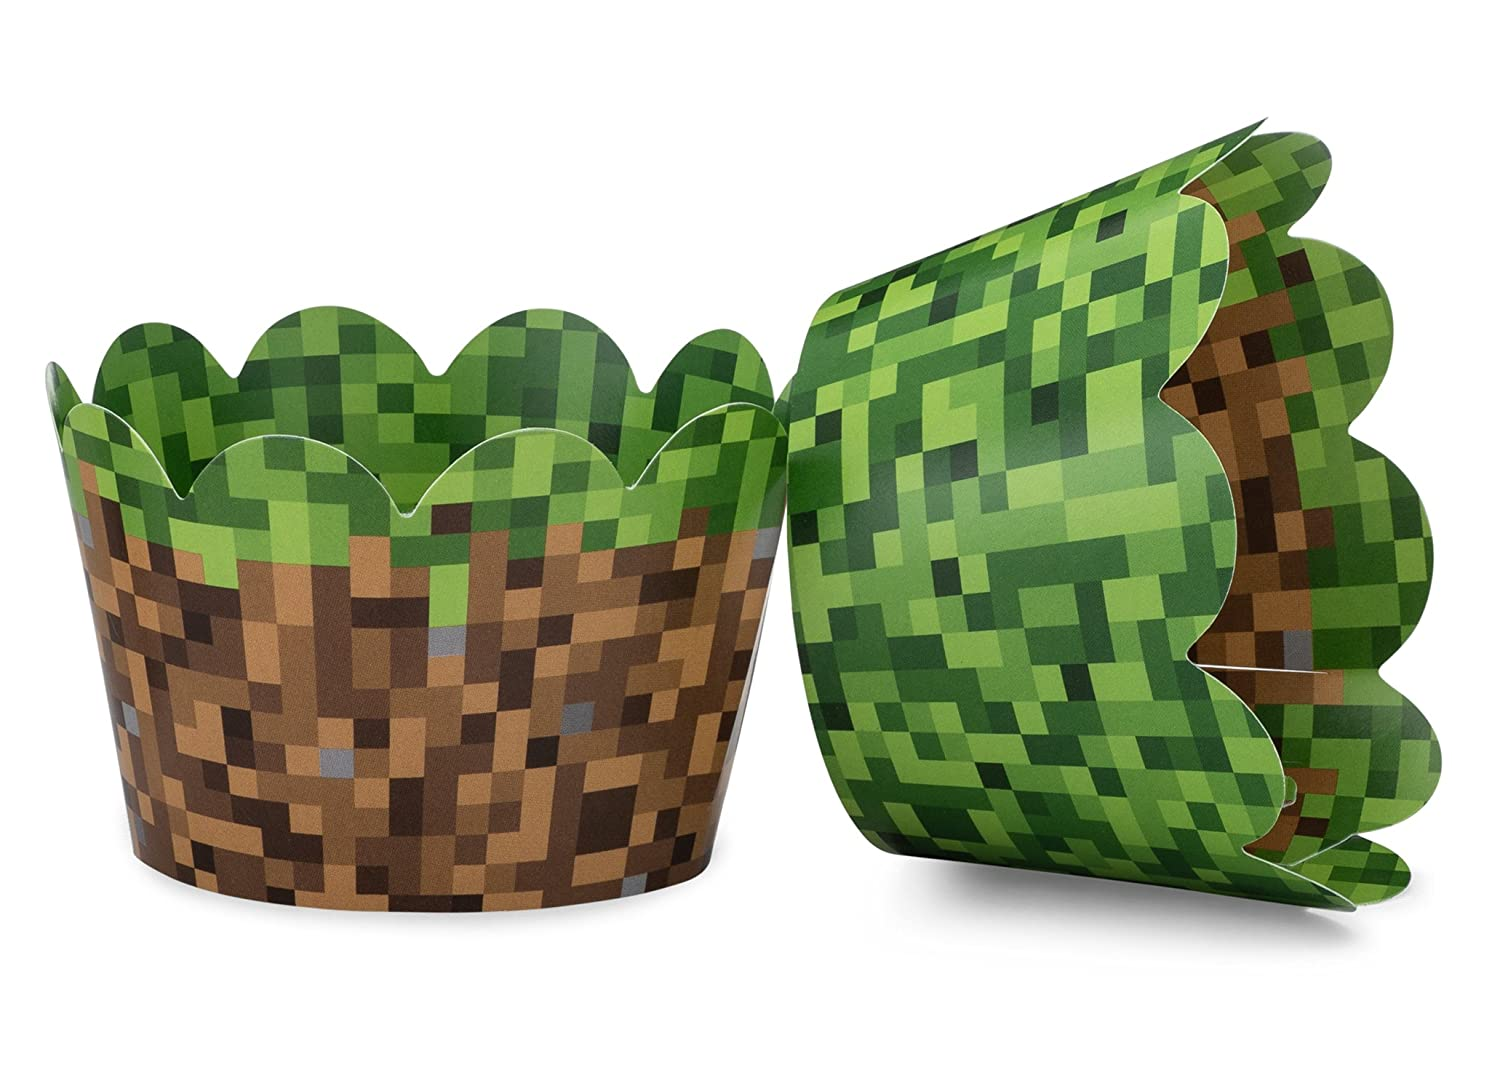 Miner Themed Pixel Grass Cupcake Wrappers for Boys Birthday Parties, Vintage 8-Bit Birthday Party. Set of 24 Reversible Engineer Grass and Green Pixel Cup Cake Holder Wraps. Green, Brown, Gray